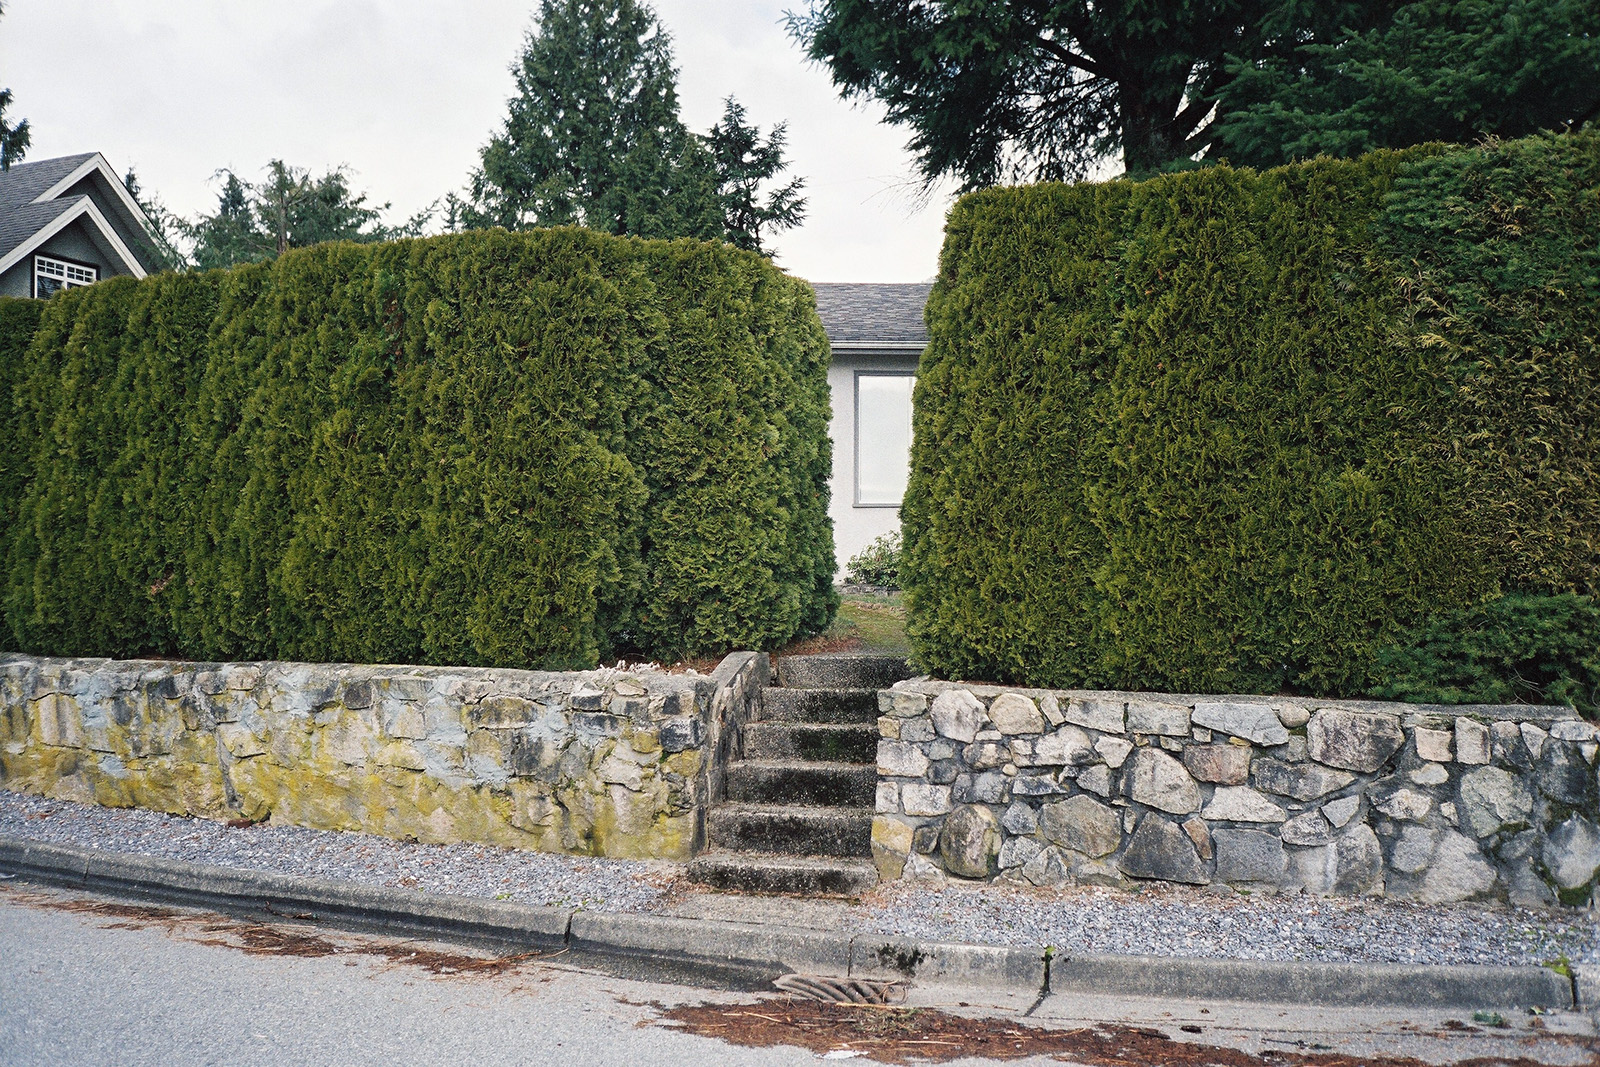 Steps up to a gap in the hedge © Tanya Clarke 2018